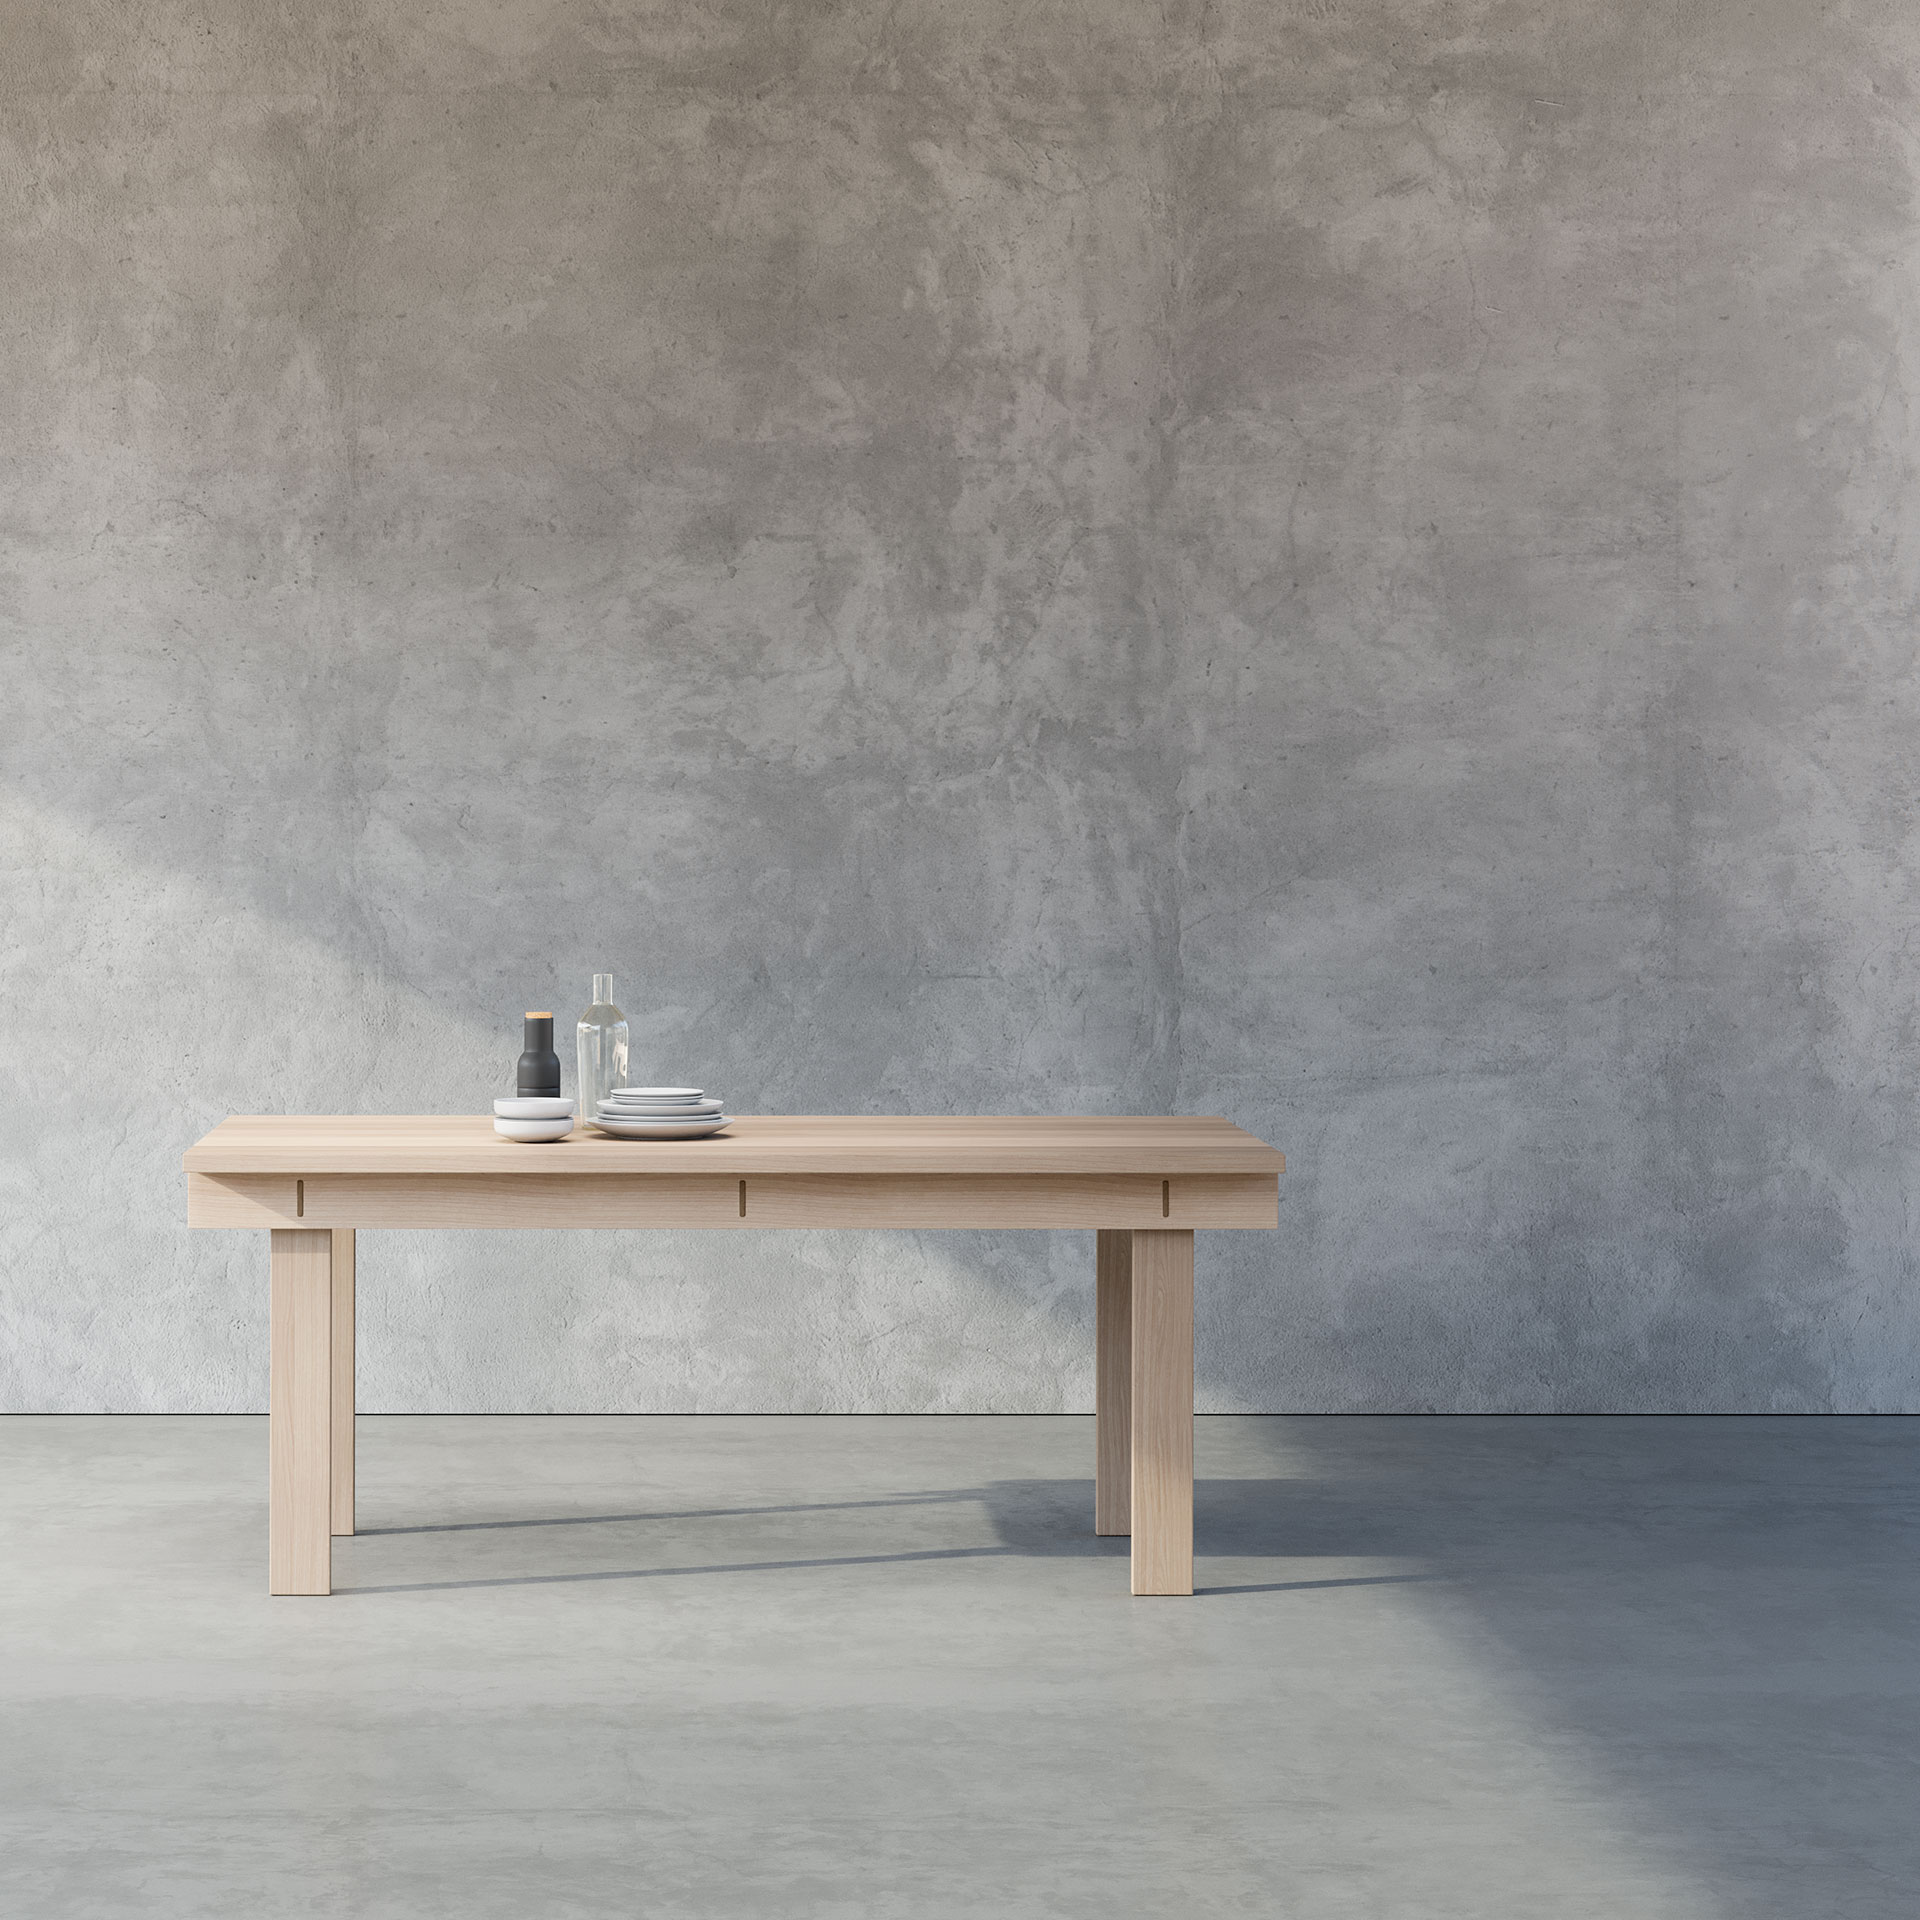 TABLE SERIES ROXO is made from durable and solid wood